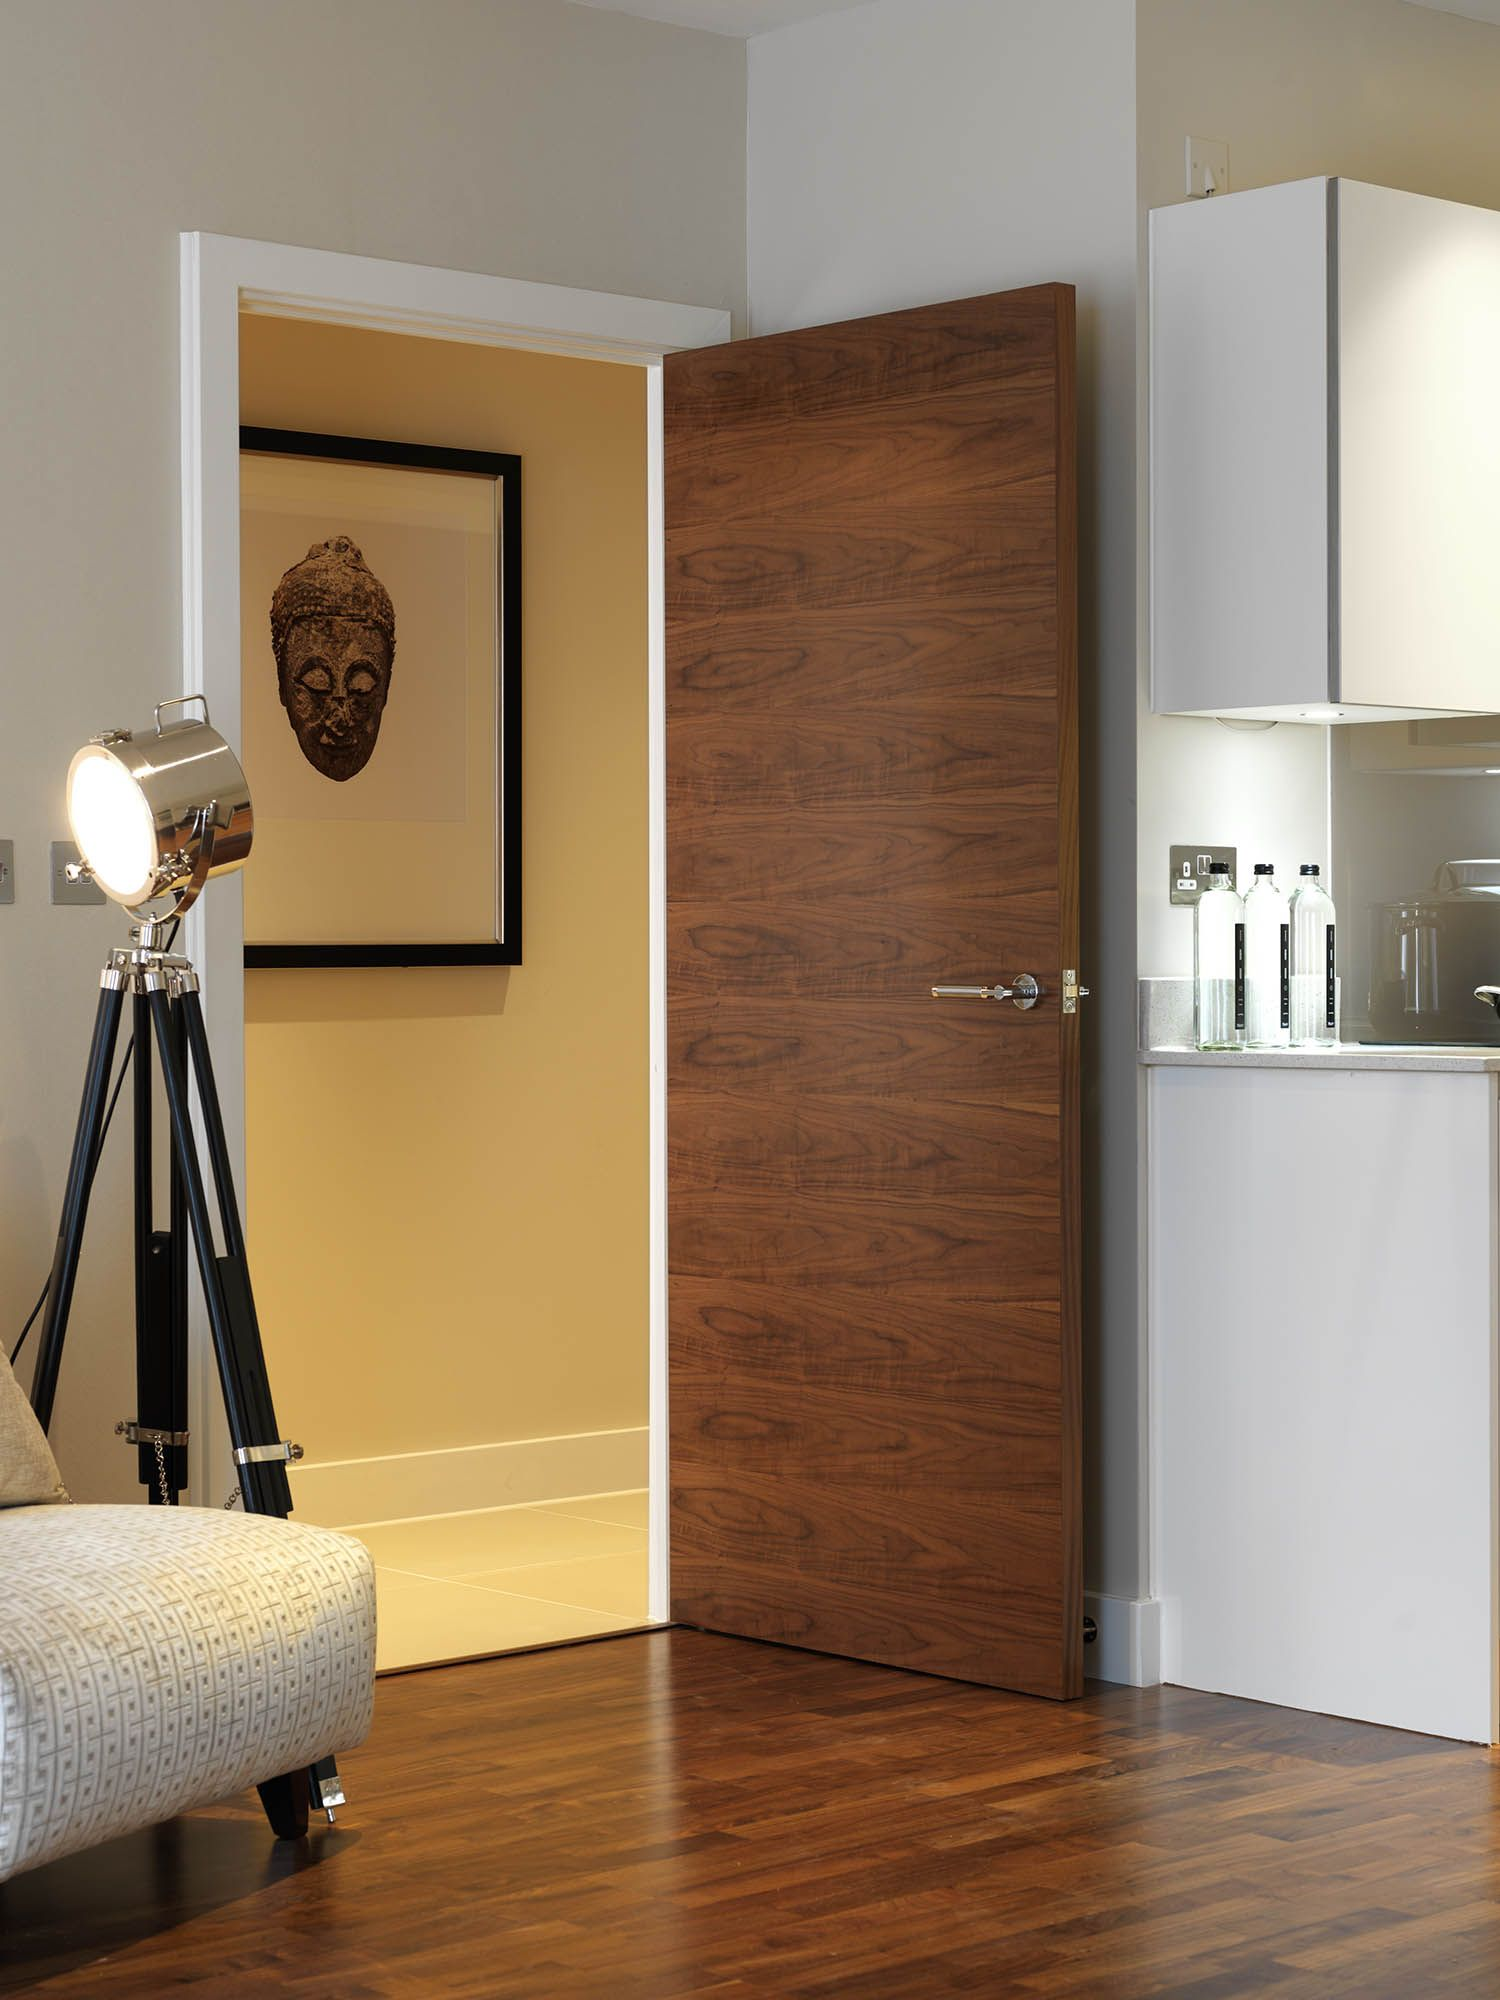 Over 200 designs of internal doors including contemporary oak interior doors or shaker style internal doors Browse JB Kind s 2017 internal door range